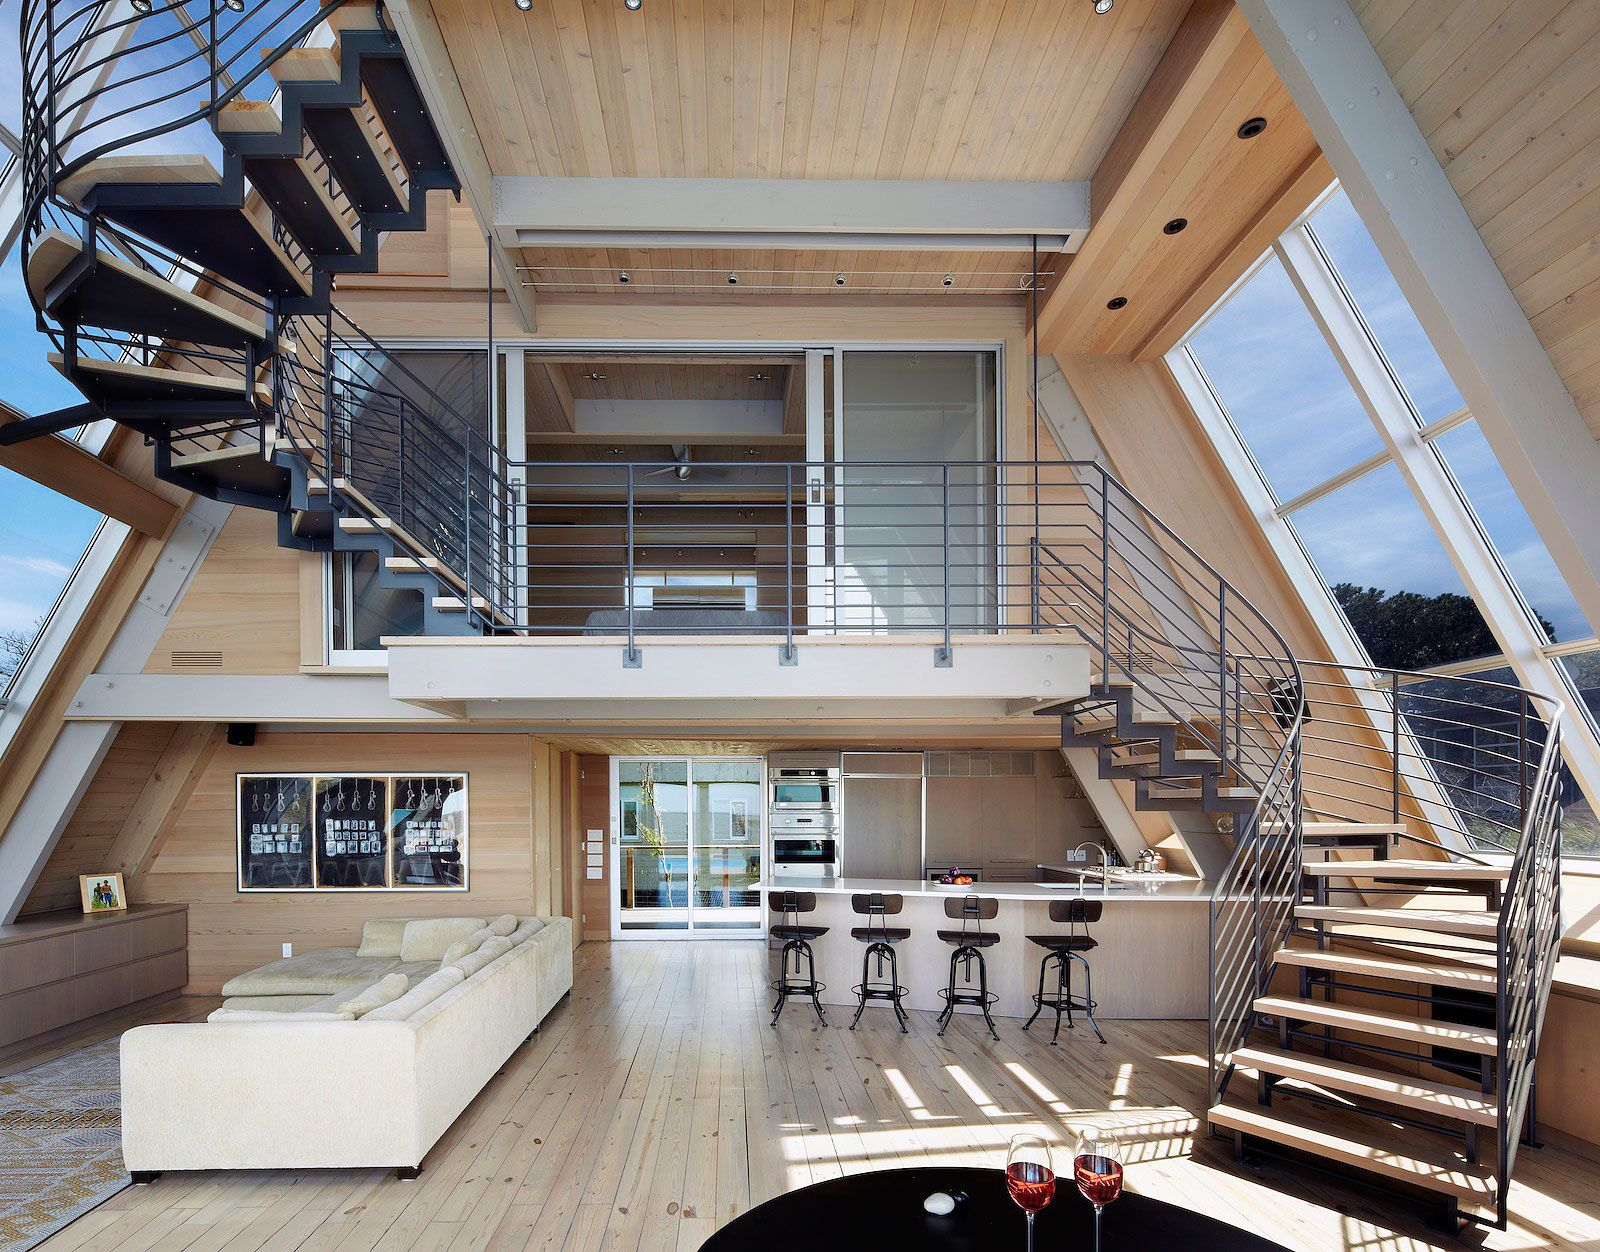 A Frame House   Living Rooms   Pinterest   Open plan  Modern living     AMAZING A FRAME HOMES   modern living space with an open plan and a frame   architecture